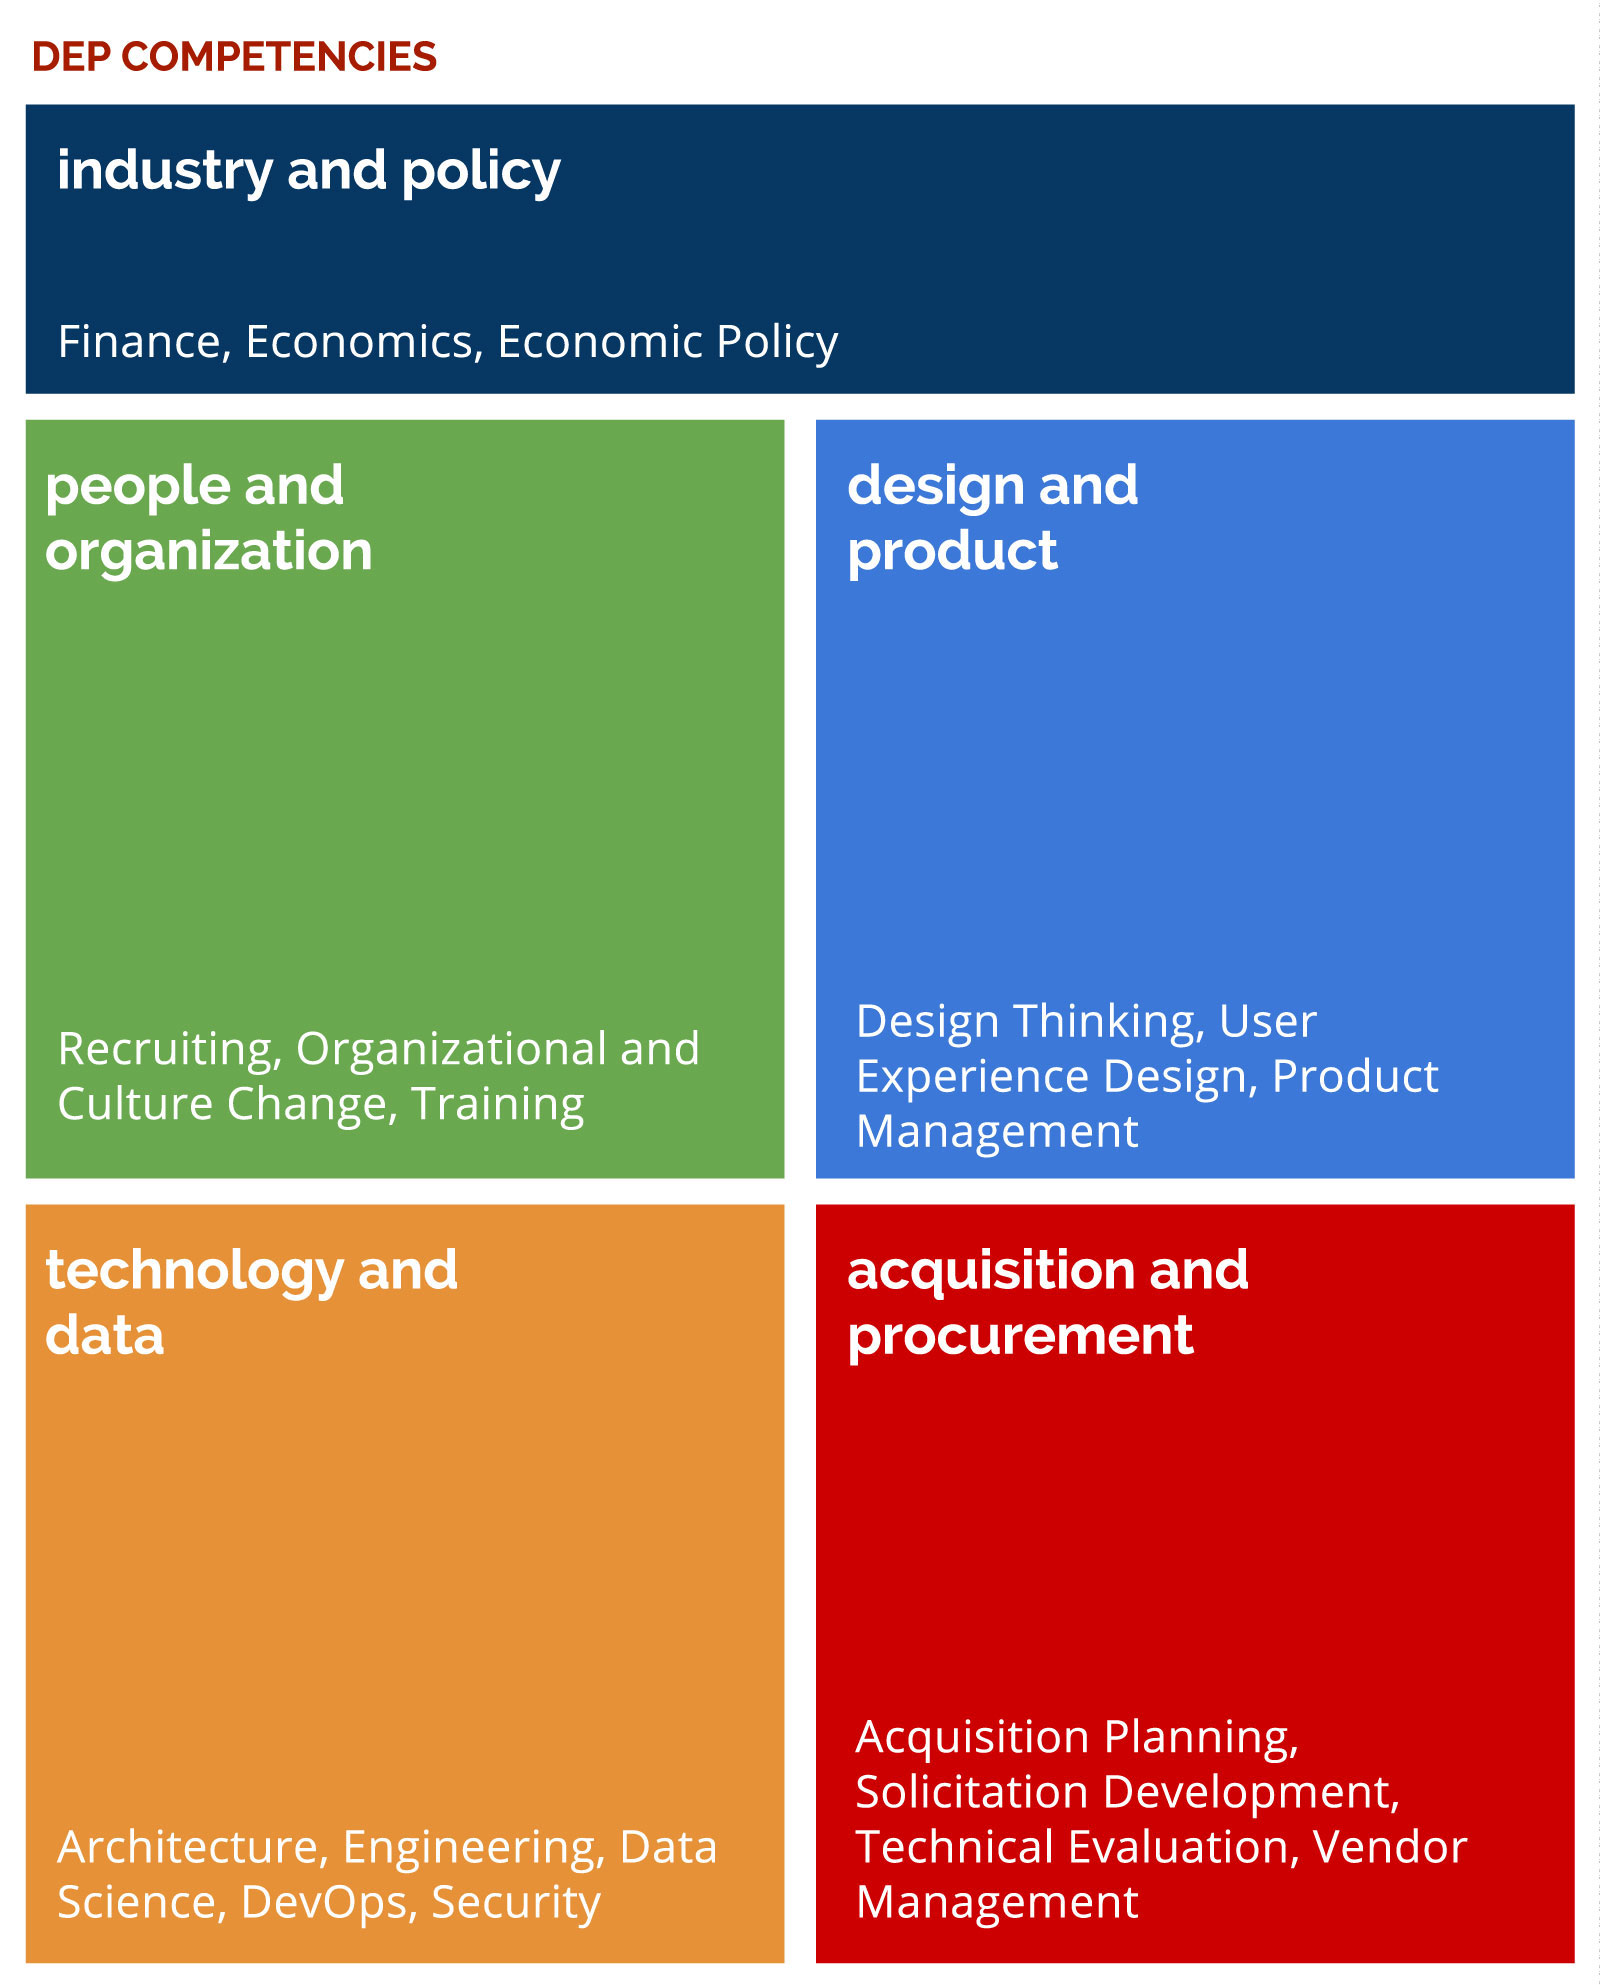 The Digital Economy Practice competencies include industry and policy, people and organization, design and product, technology and data, and acquisition and procurement.